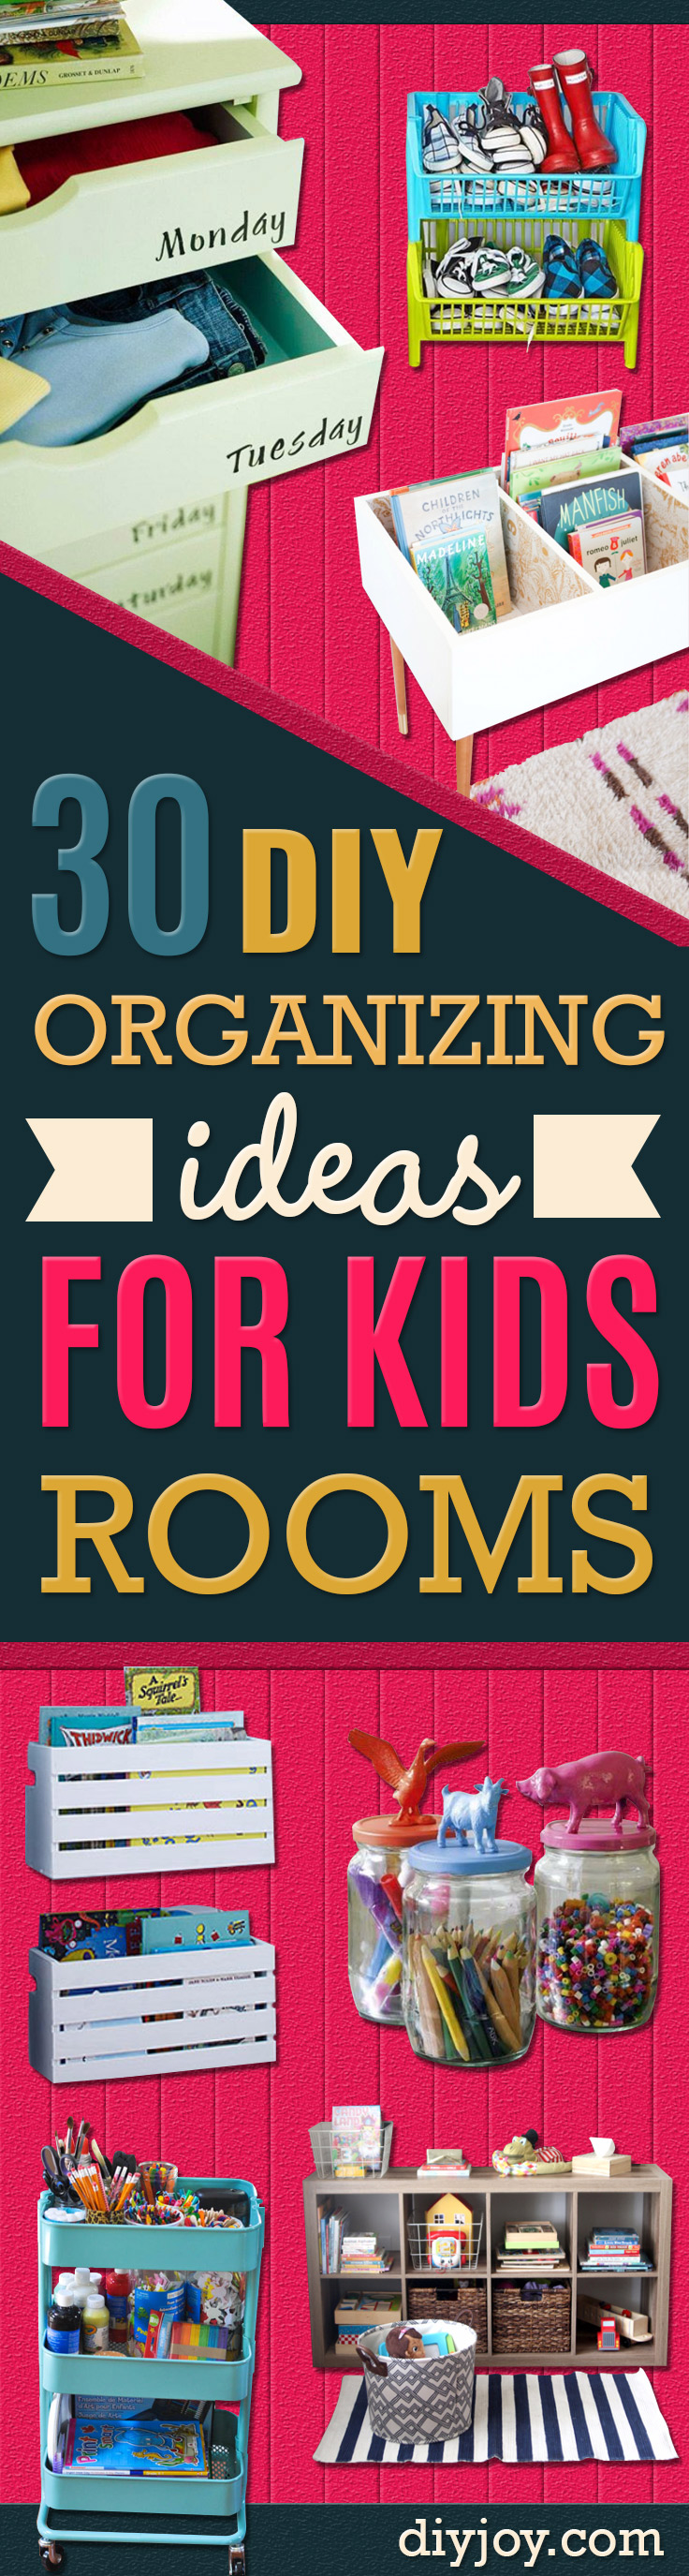 DIY Organizing Ideas for Kids Rooms - Easy Storage Projects for Boy and Girl Room - Step by Step Tutorials to Get Toys, Books, Baby Gear, Games and Clothes Organized - Quick and Cheap Shelving, Tables, Toy Boxes, Closet Tips, Bookcases and Dressers